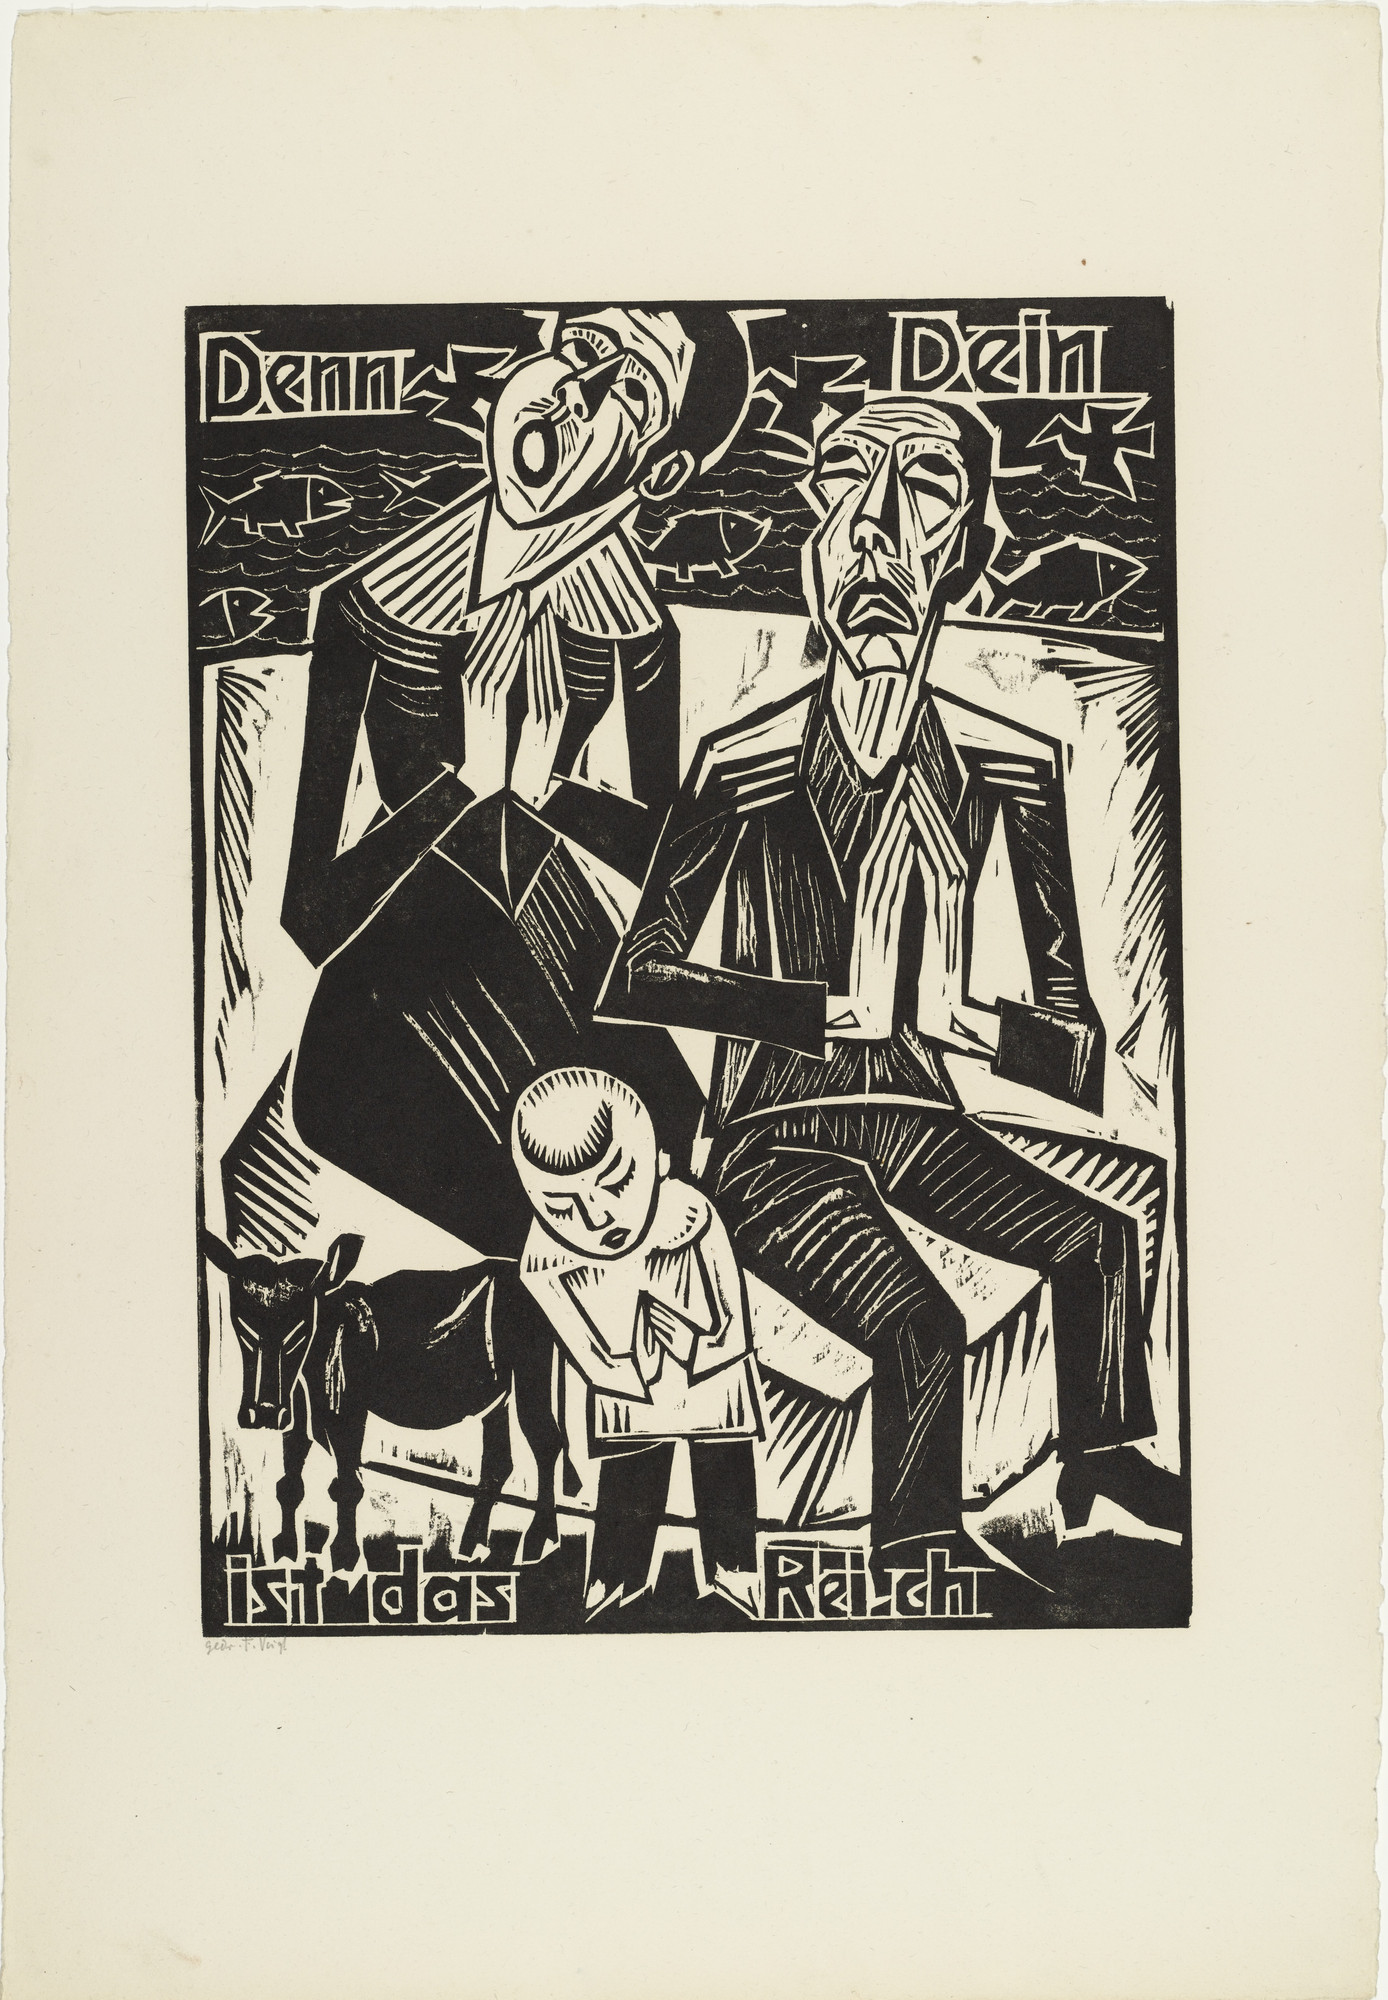 Max Pechstein. For Thine / is the kingdom (Denn Dein / ist das Reich) from The Lord's Prayer (Das Vater Unser). 1921